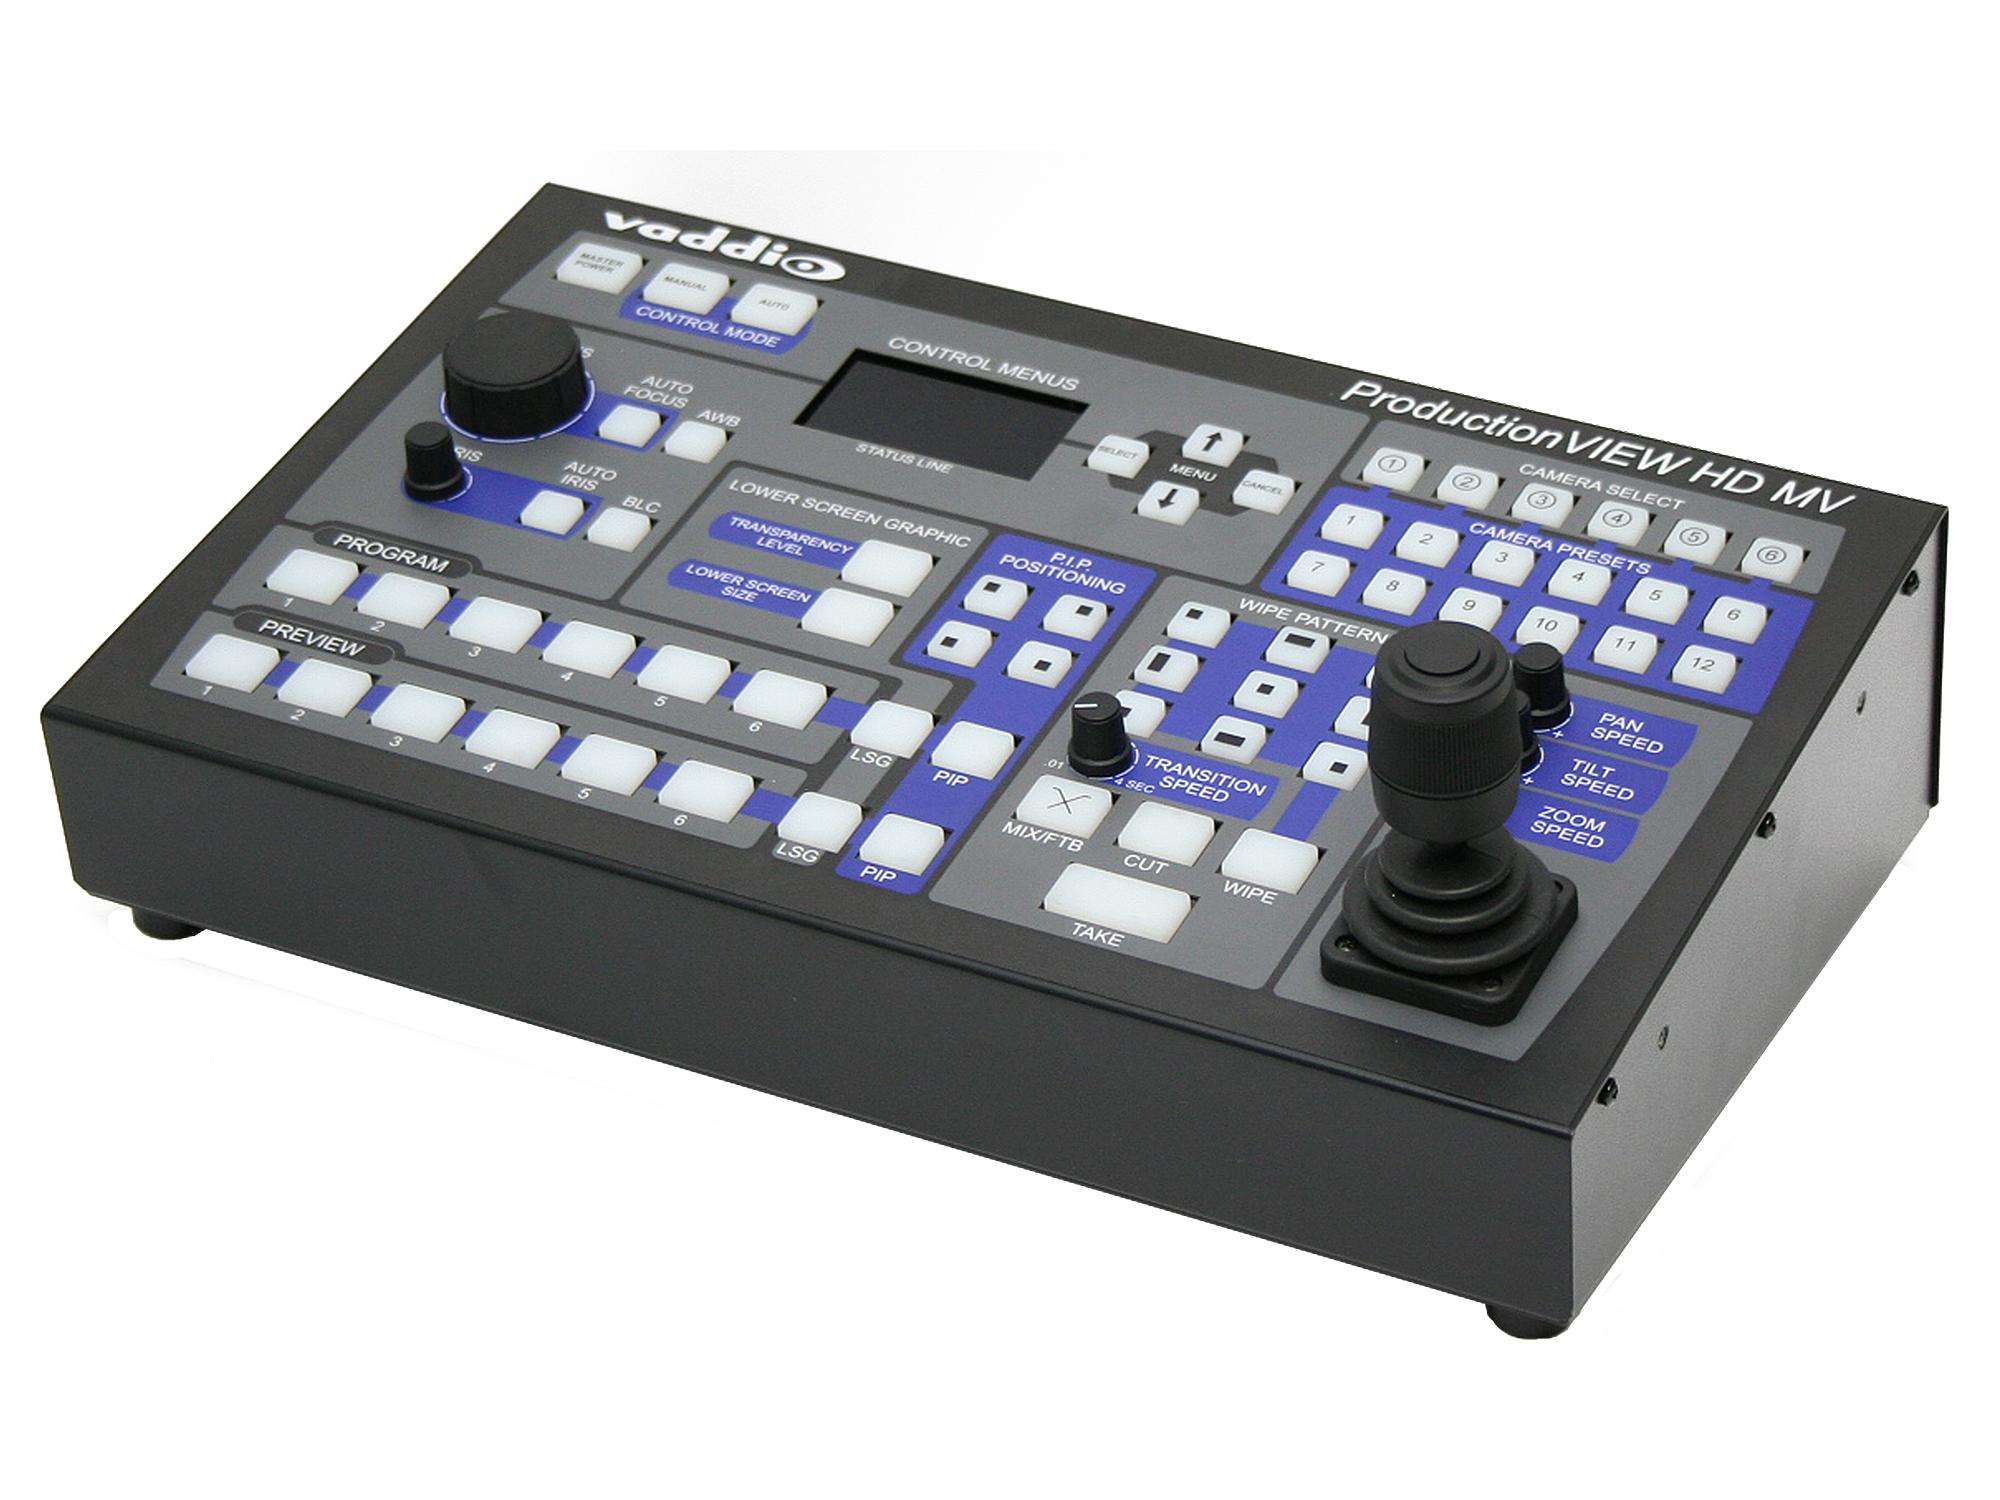 Vaddio 999-5625-000 ProductionVIEW HD/RGBHV/SD MV is a camera control console with multiviewer capabilities